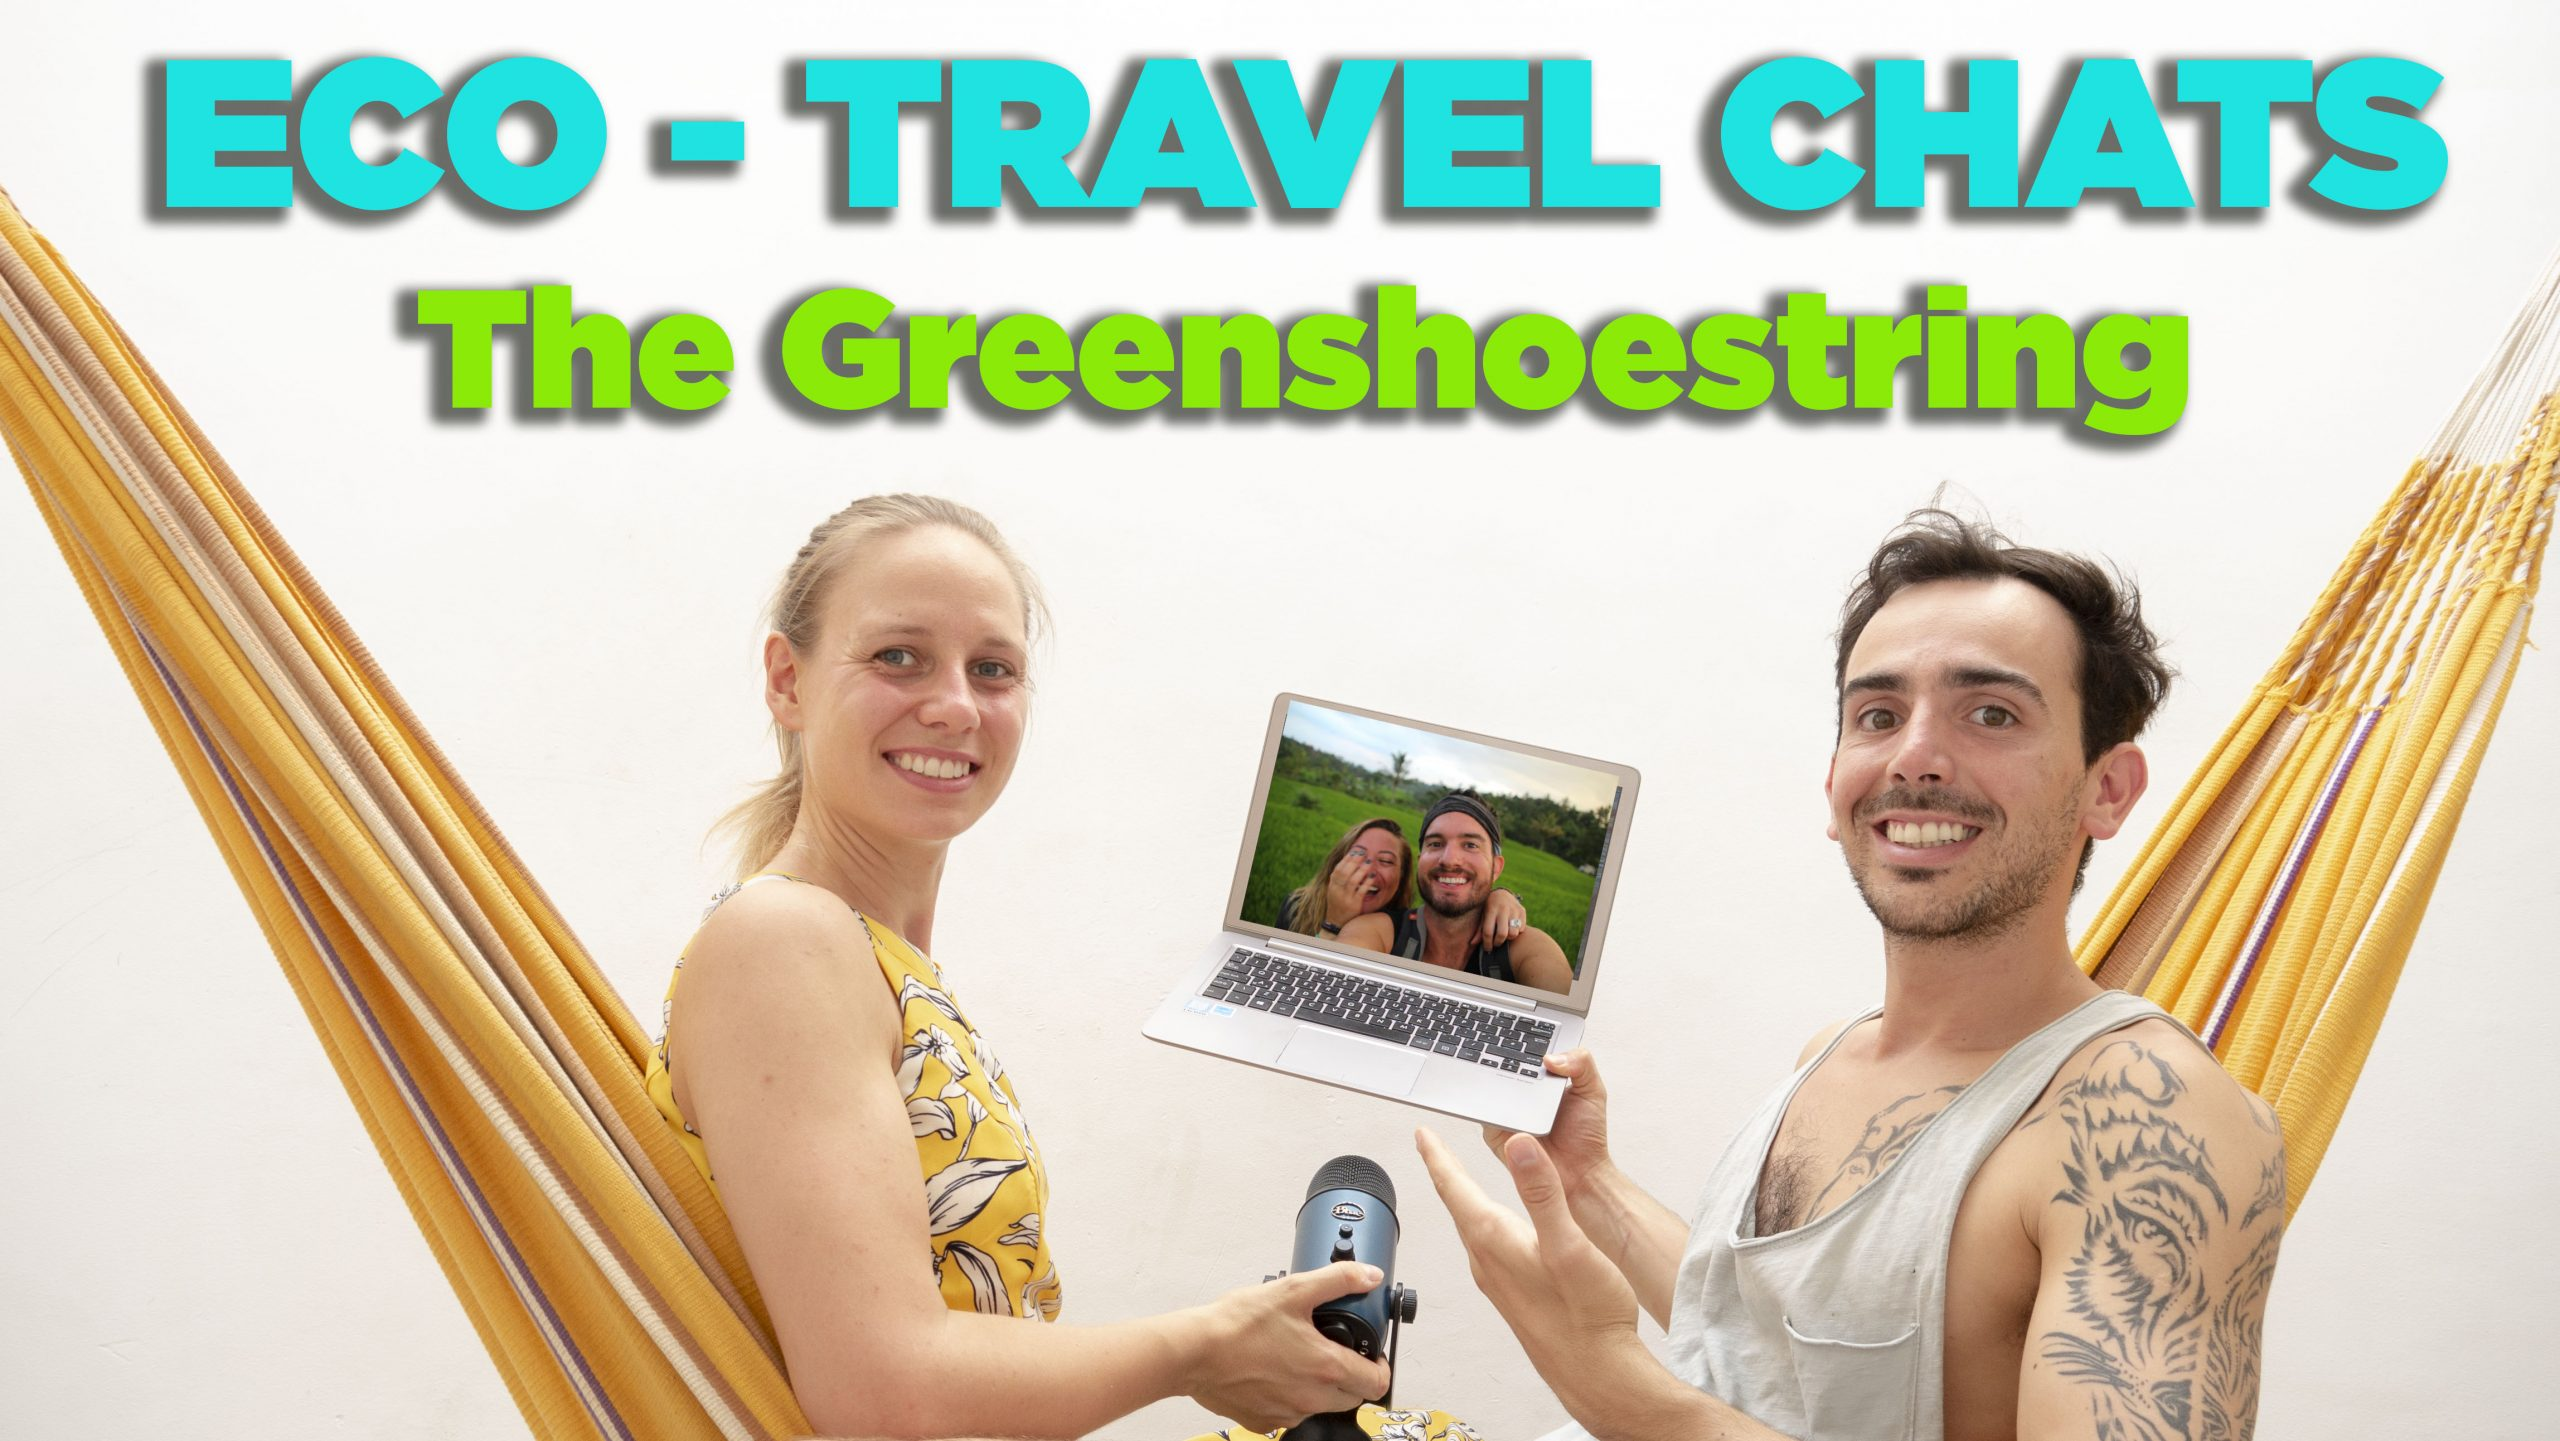 Bamboo and Backpacks Eco Travel Chats